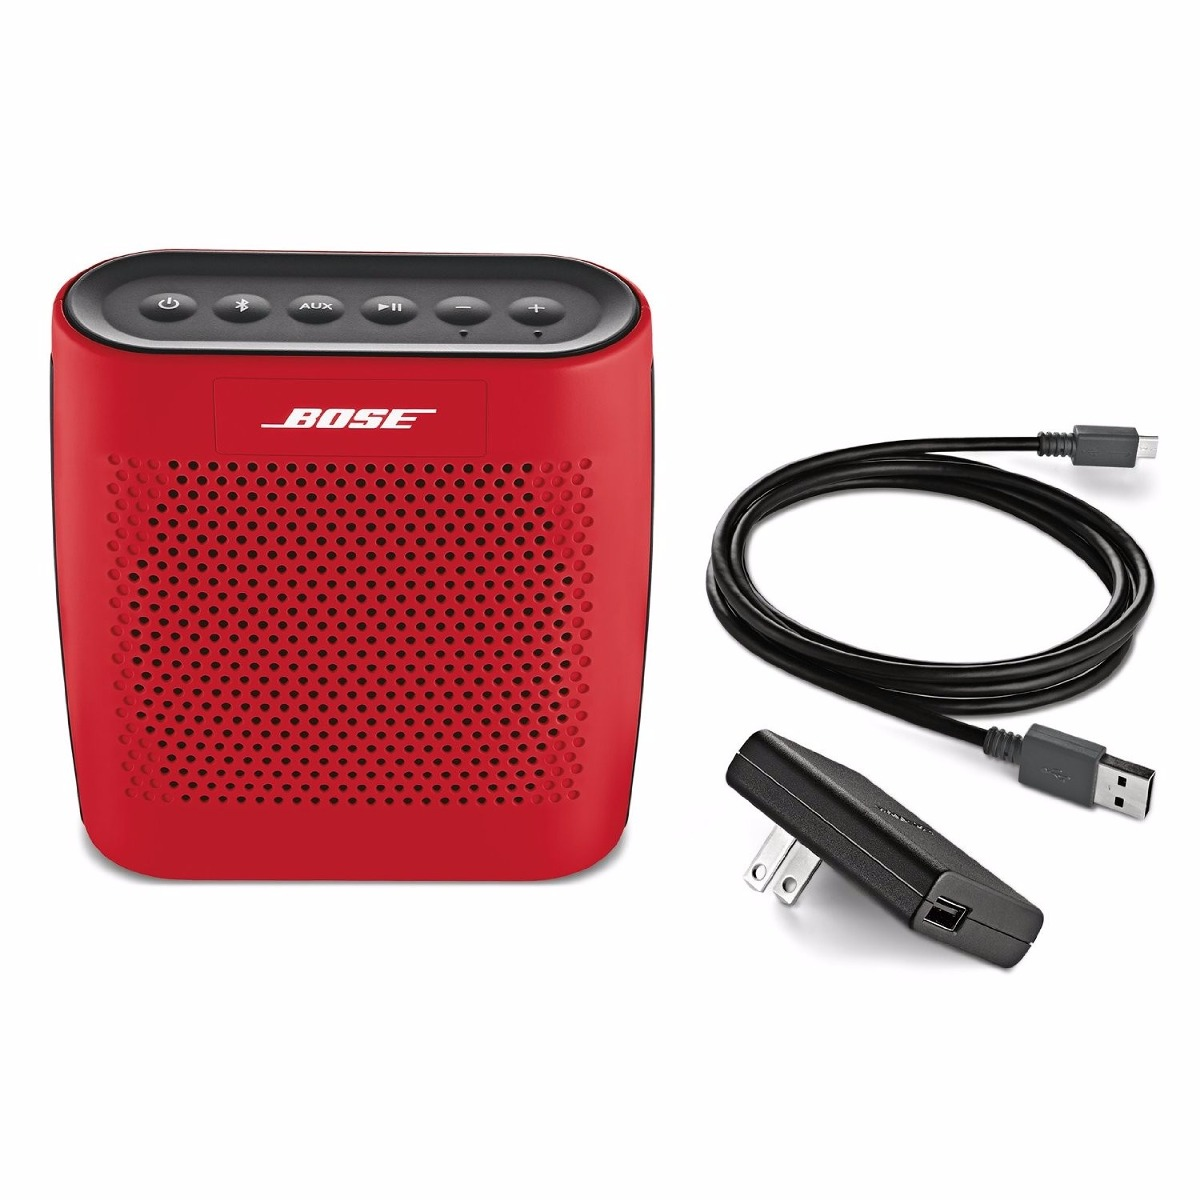 126503 6 5 Ib Sub Challenger Rear Deck together with MLM 566352037 Bocina Portatil Bluetooth Blanco Bose  JM in addition Htup 1007 1997 Honda Civic Cx moreover Jbl Charge further Creative Labs Inspire 51 A500 Black Speakers Retail Boxed 26666. on re audio 12 subwoofer